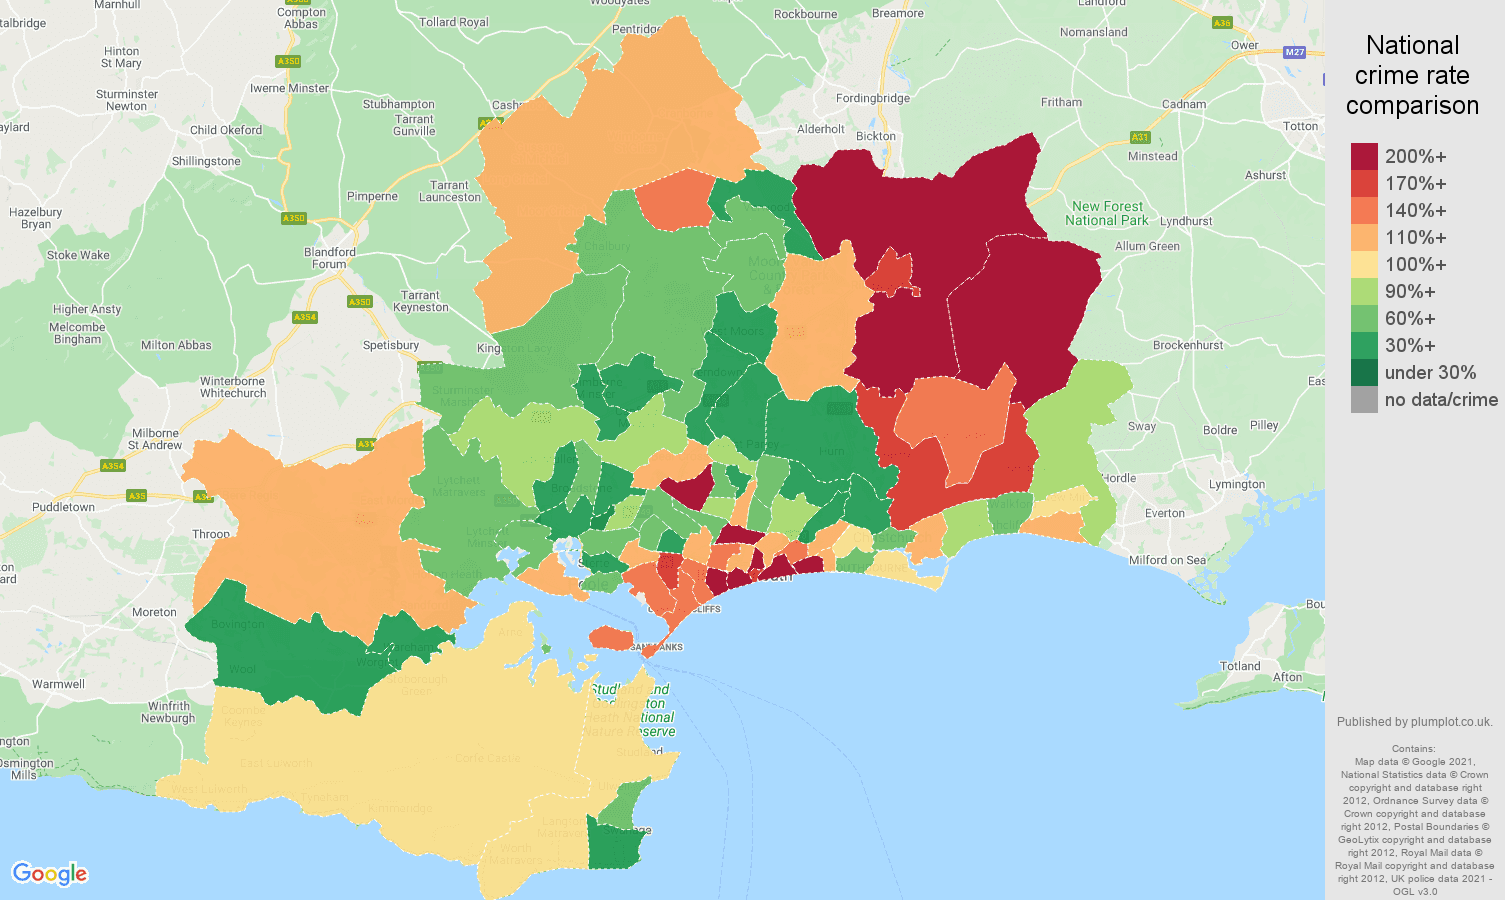 Bournemouth burglary crime rate comparison map